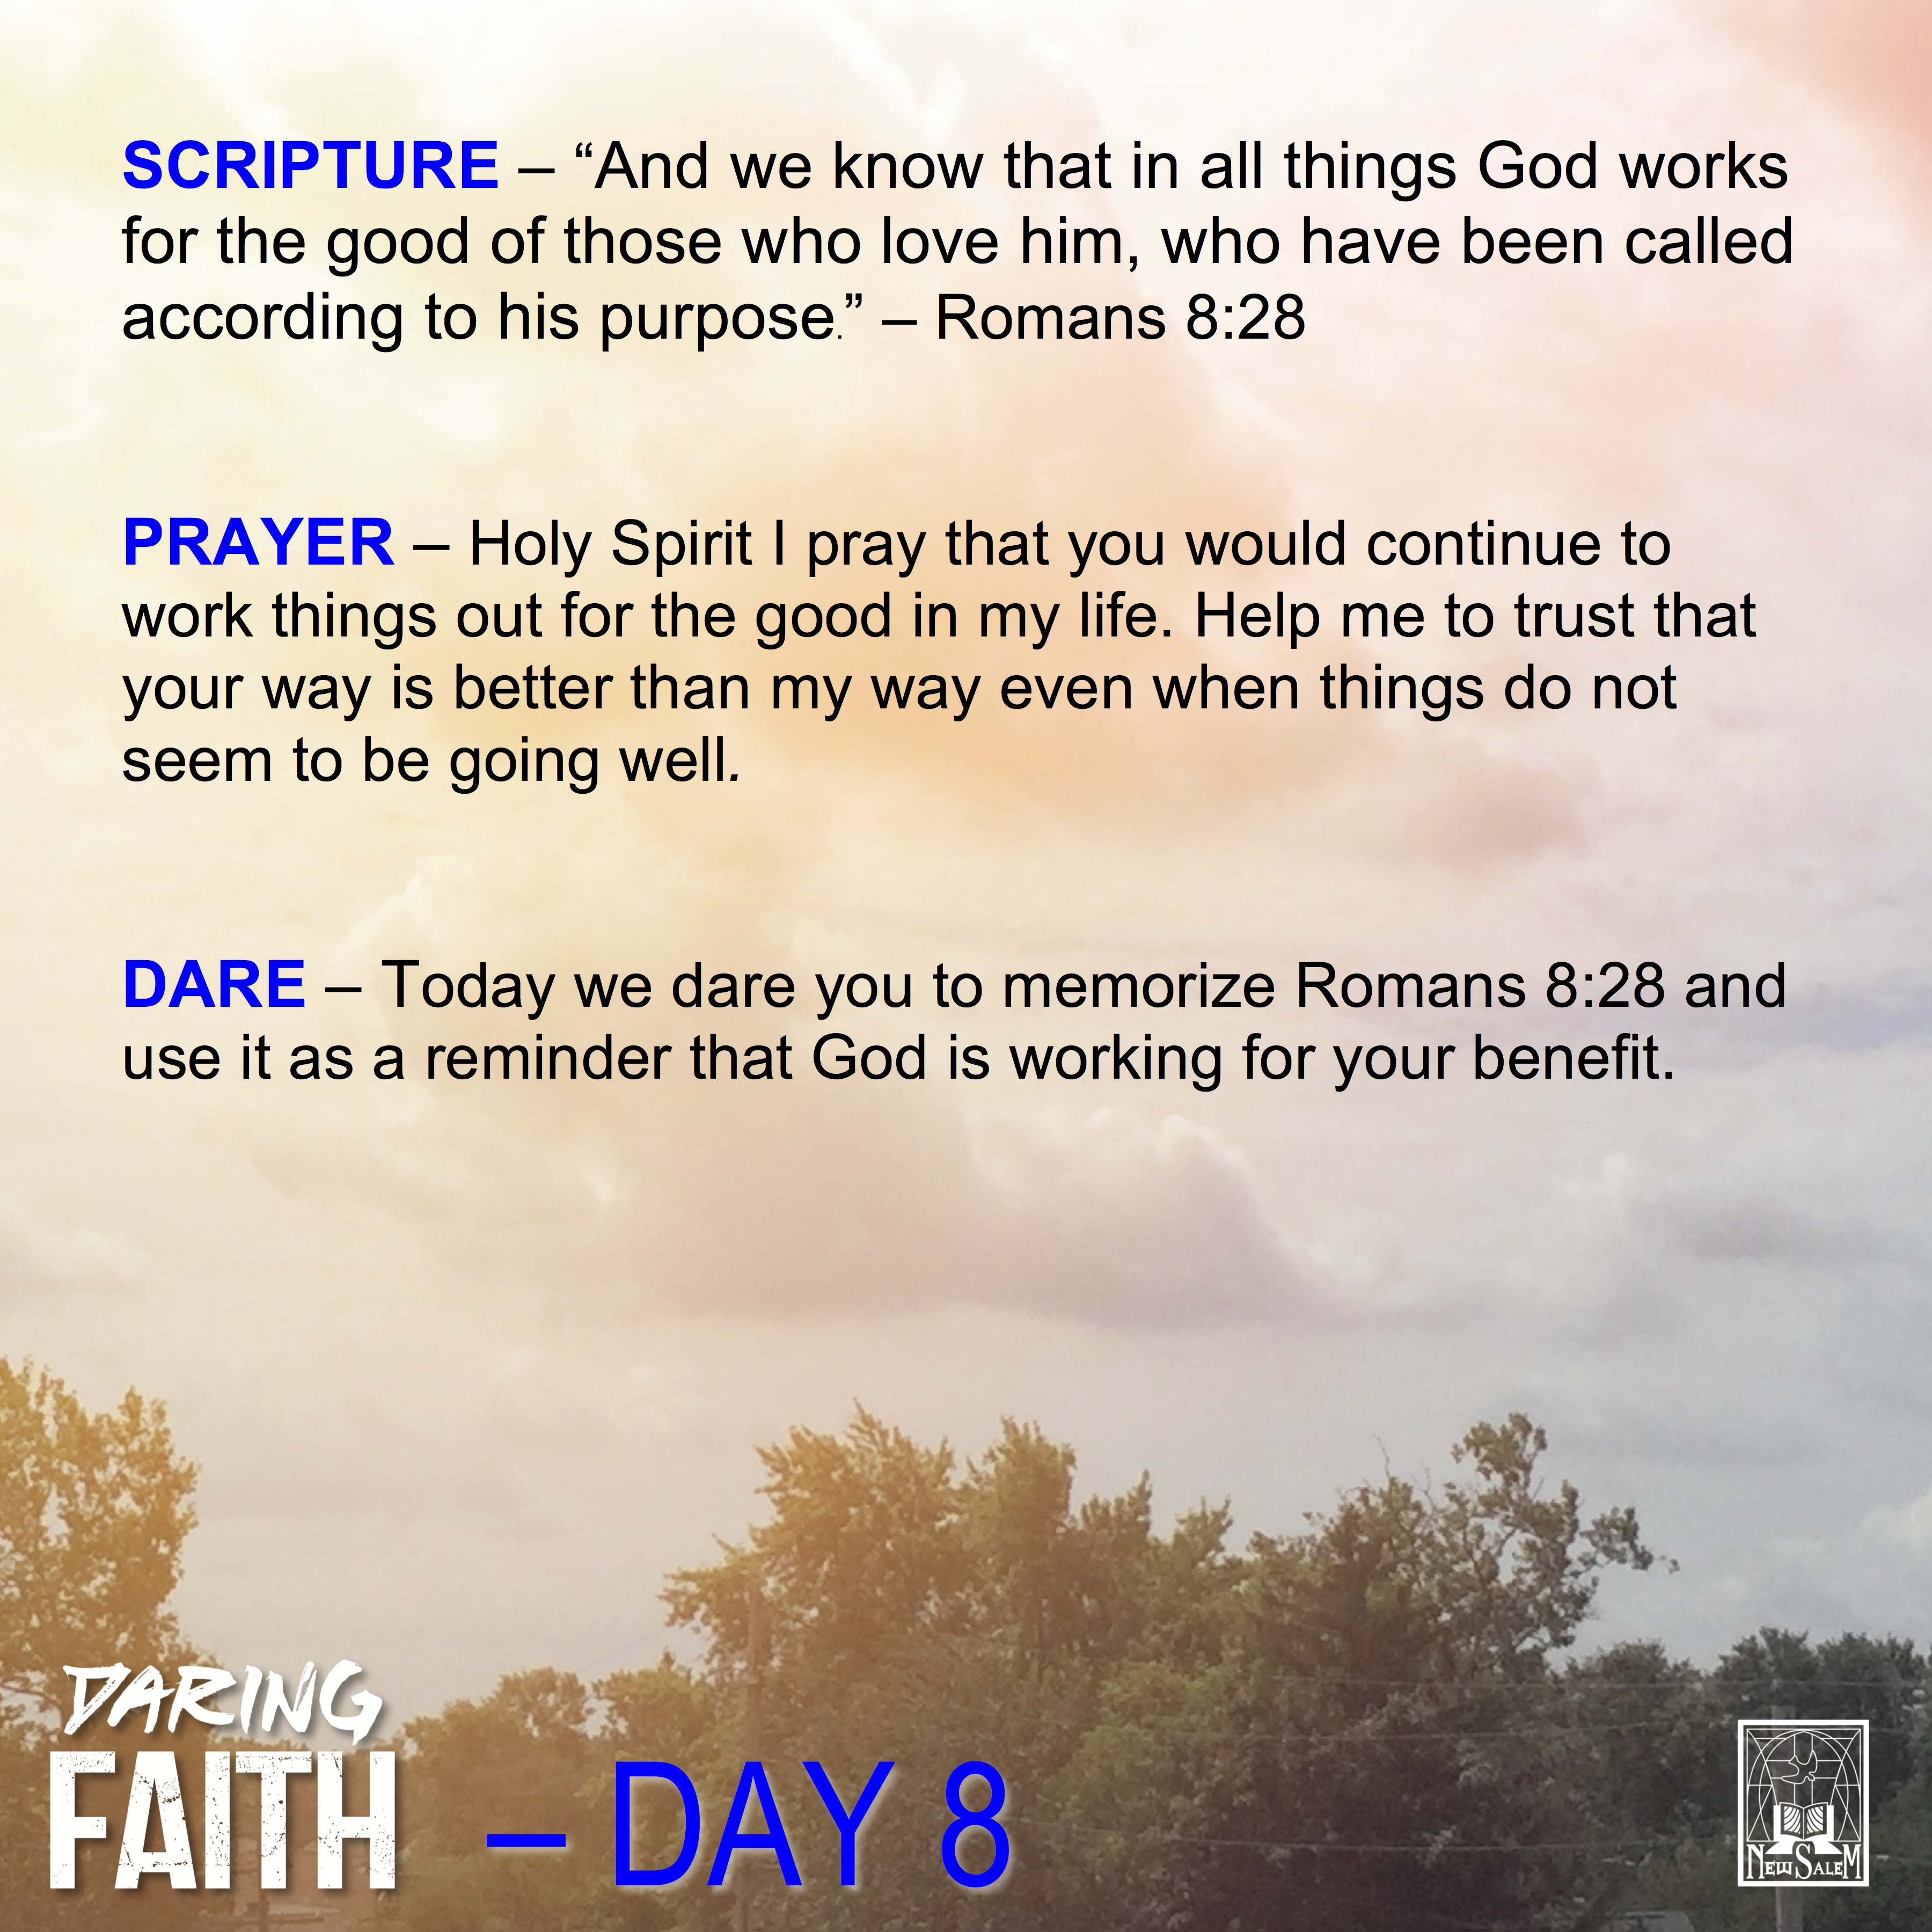 Daring Faith Devotional - Day 8